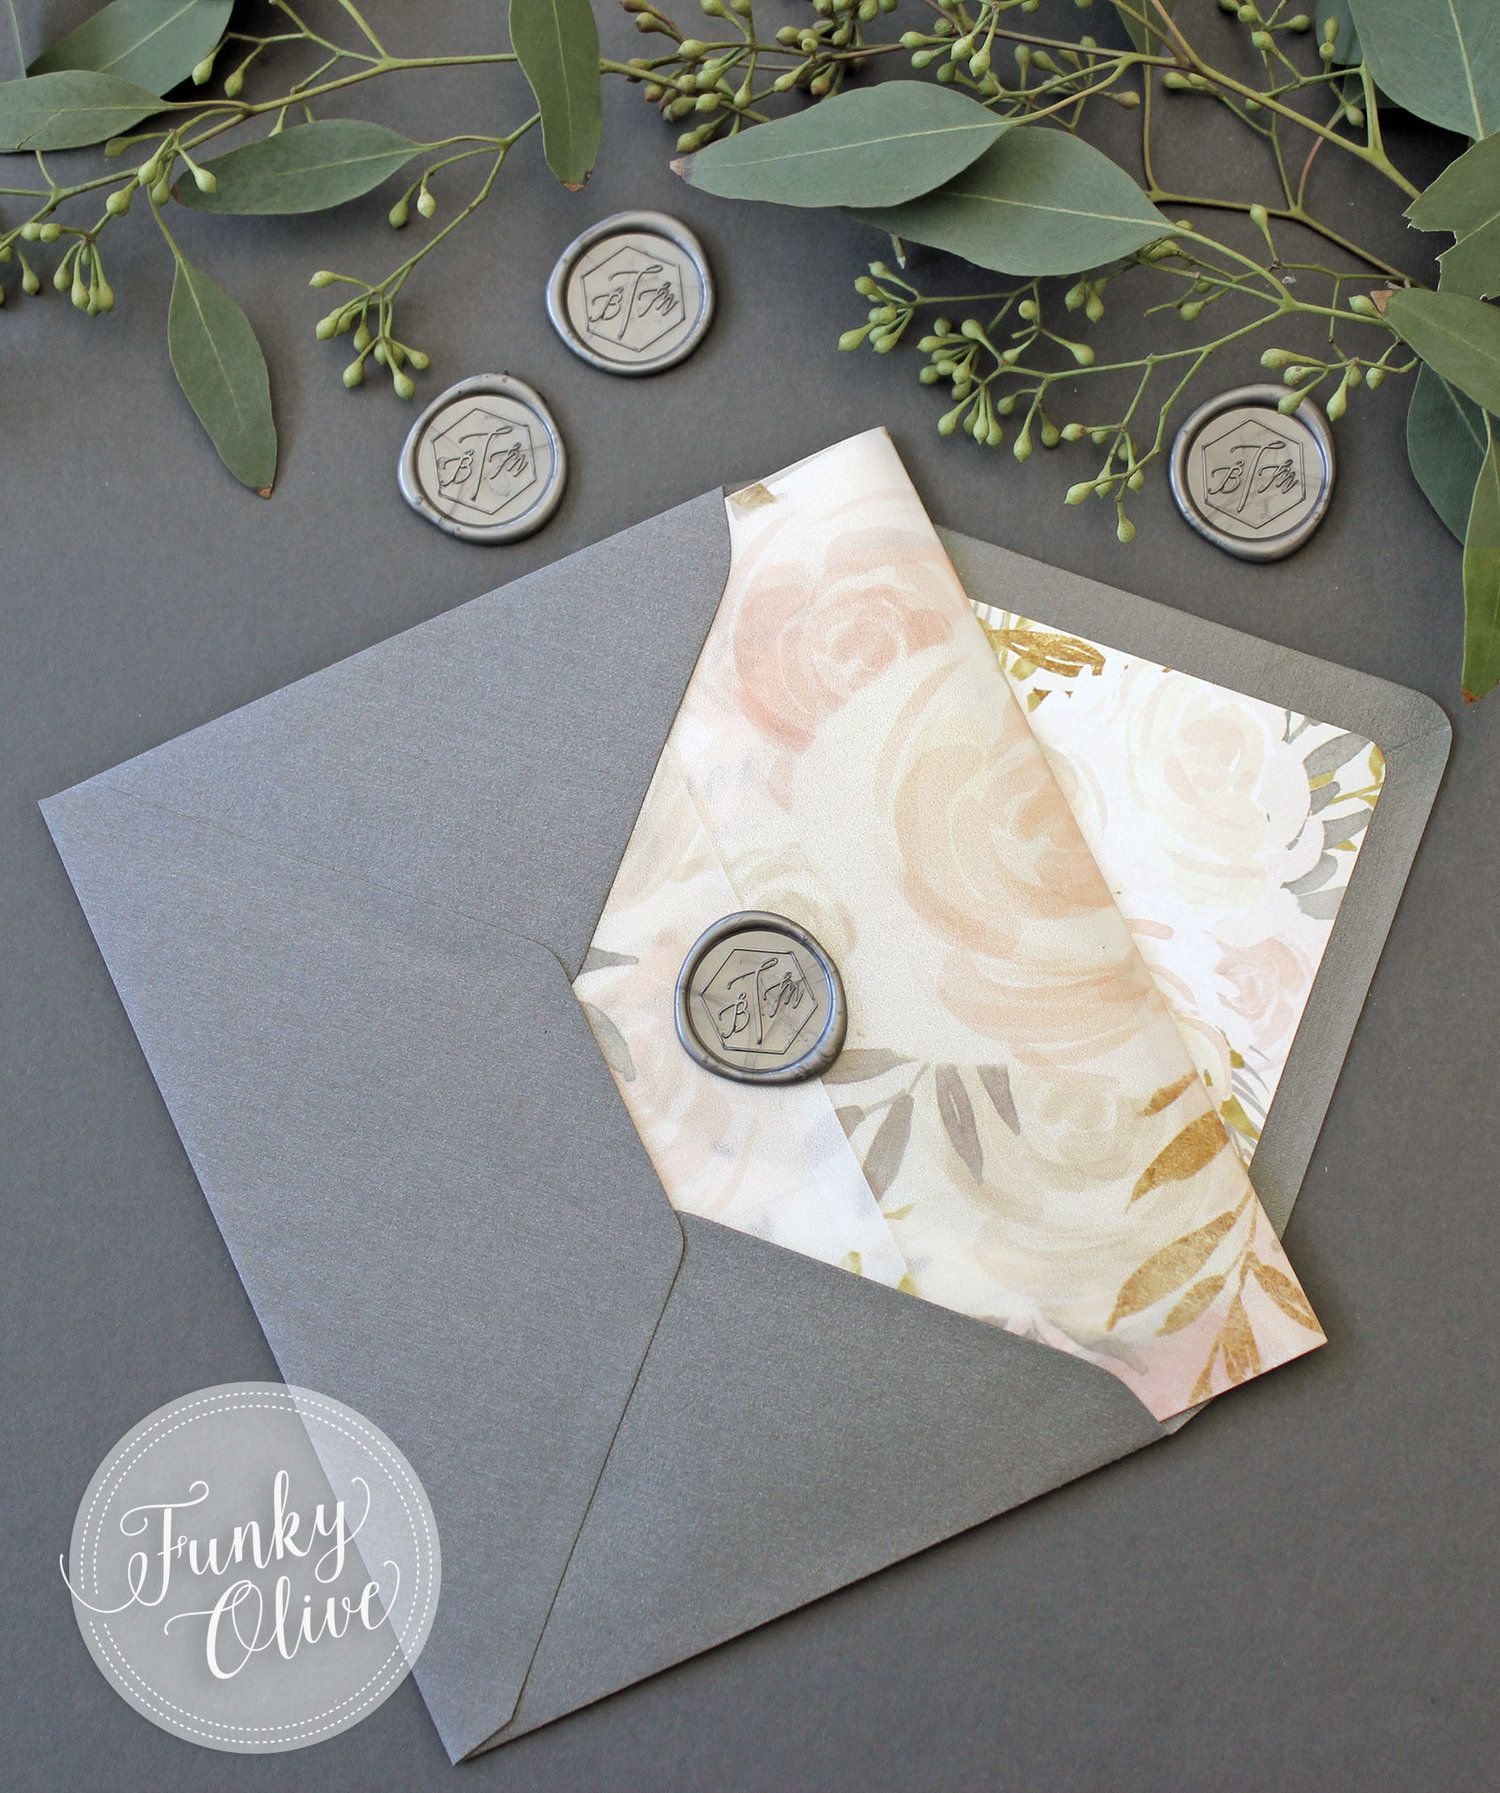 Vellum Wrap Invitation Wax Seal | Vellum Wrapped Invitations ...